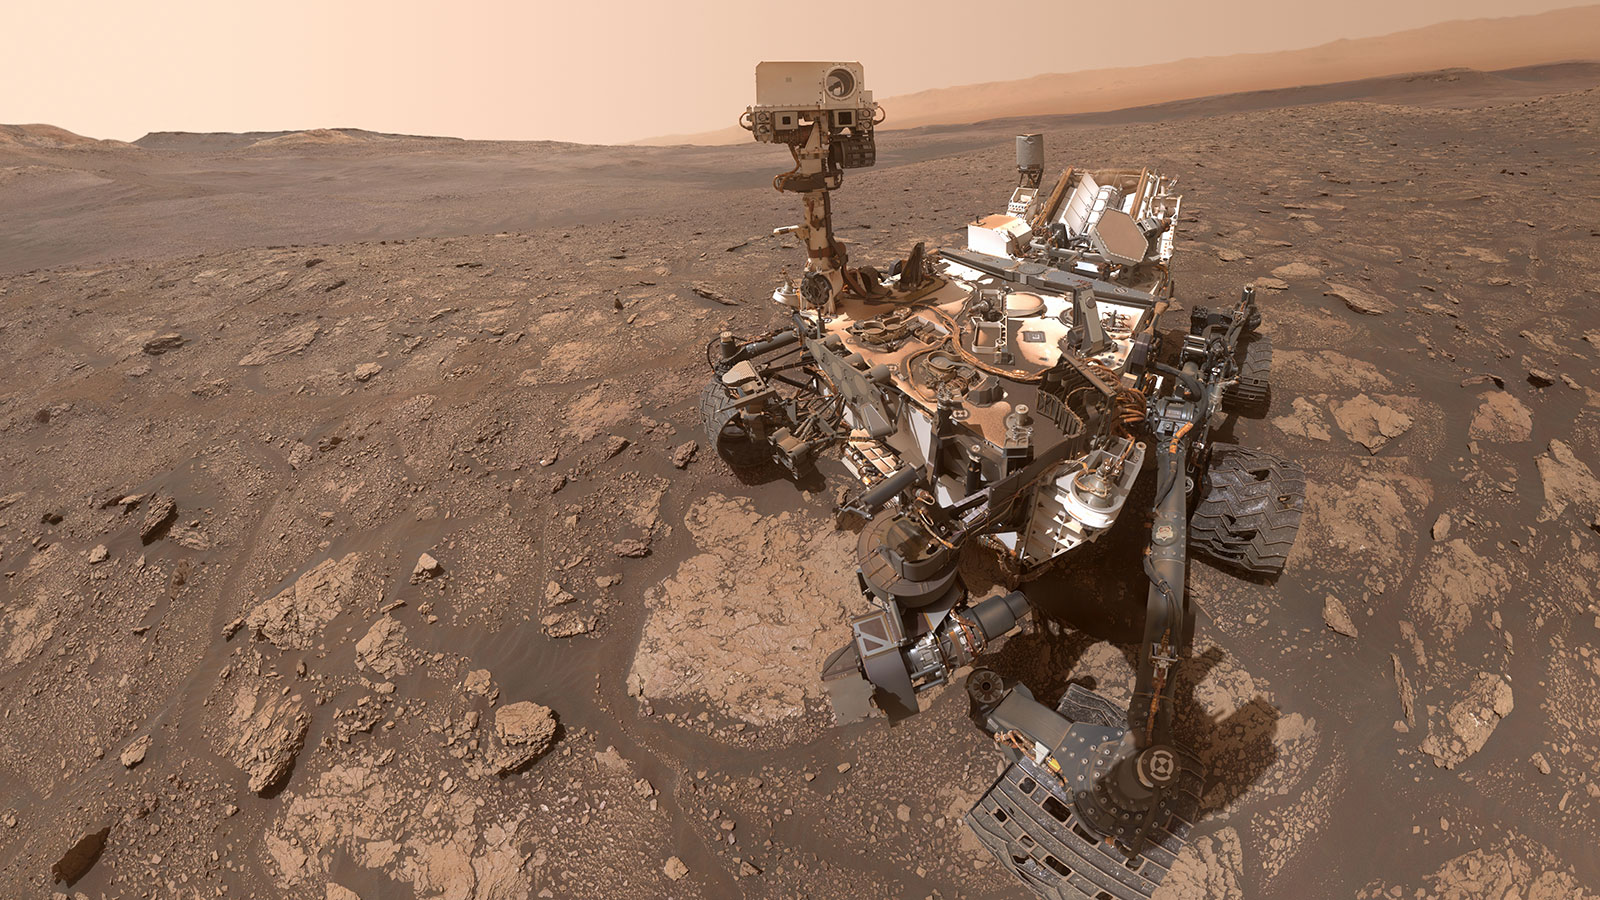 Curiosity rover takes a selfie